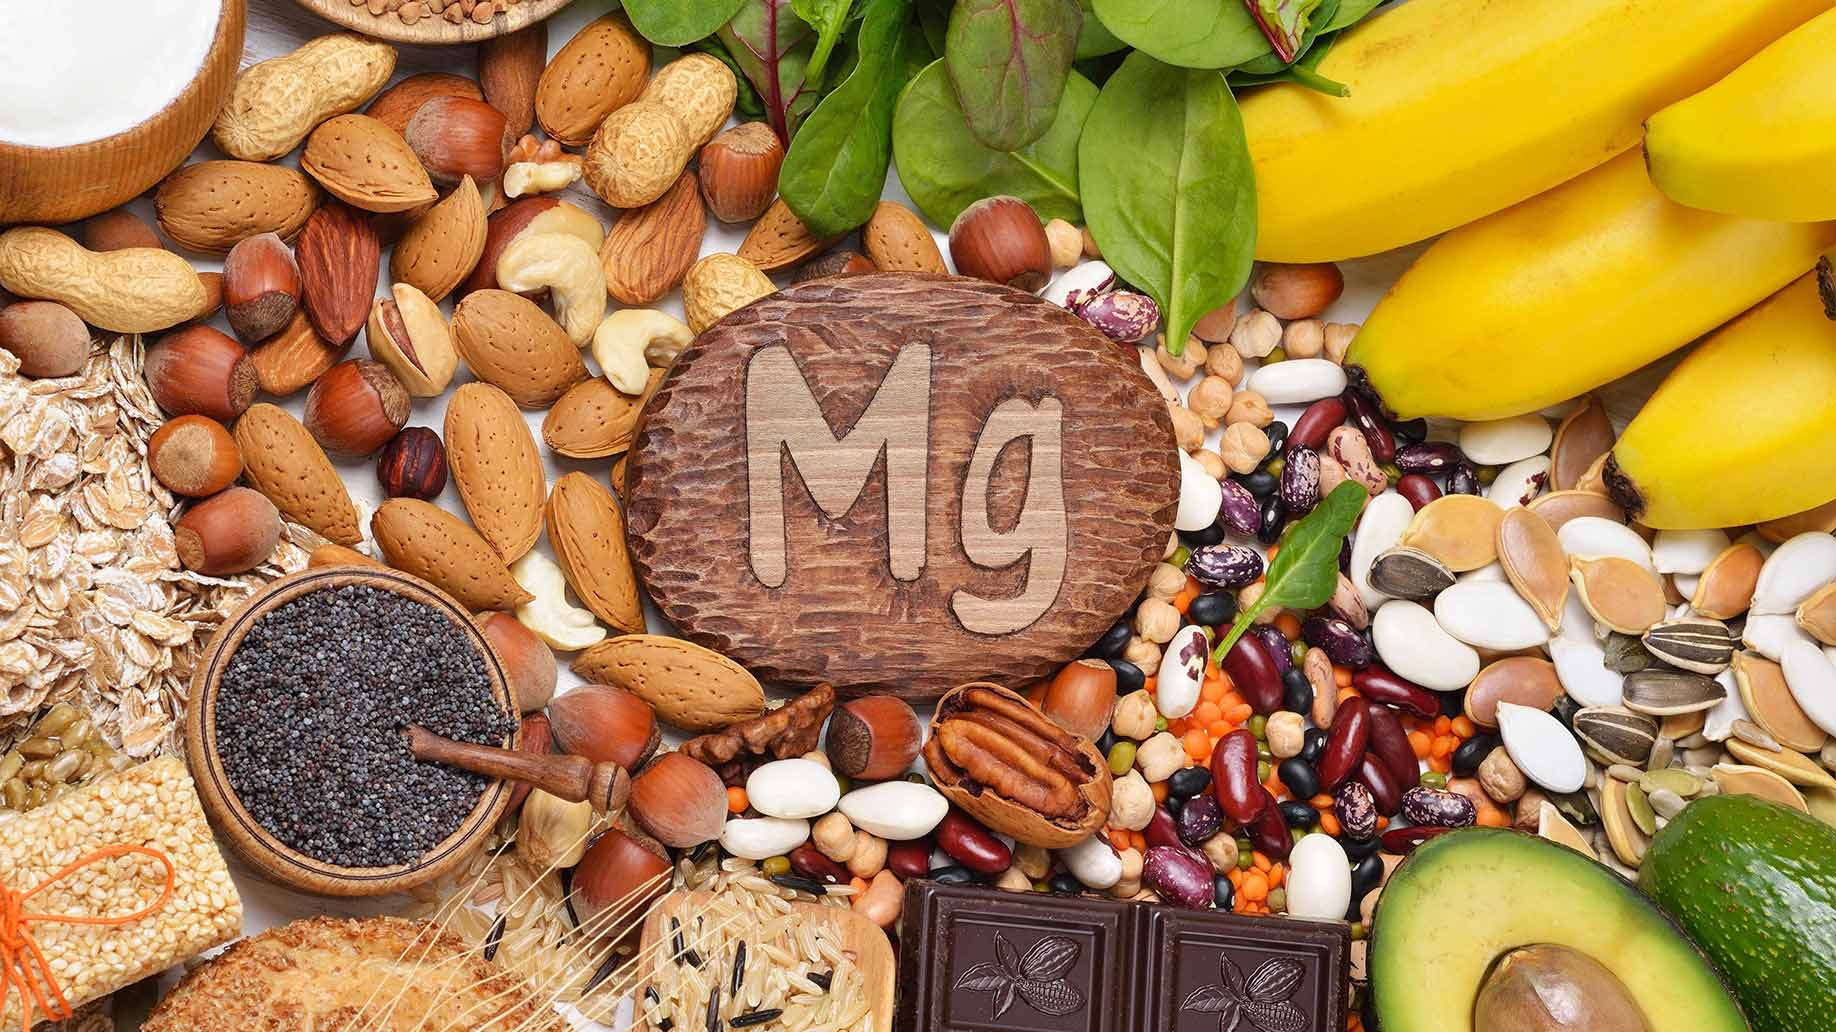 magnesium nuts seeds avocado green leafy vegetables diabetes prediabetes natural remedies